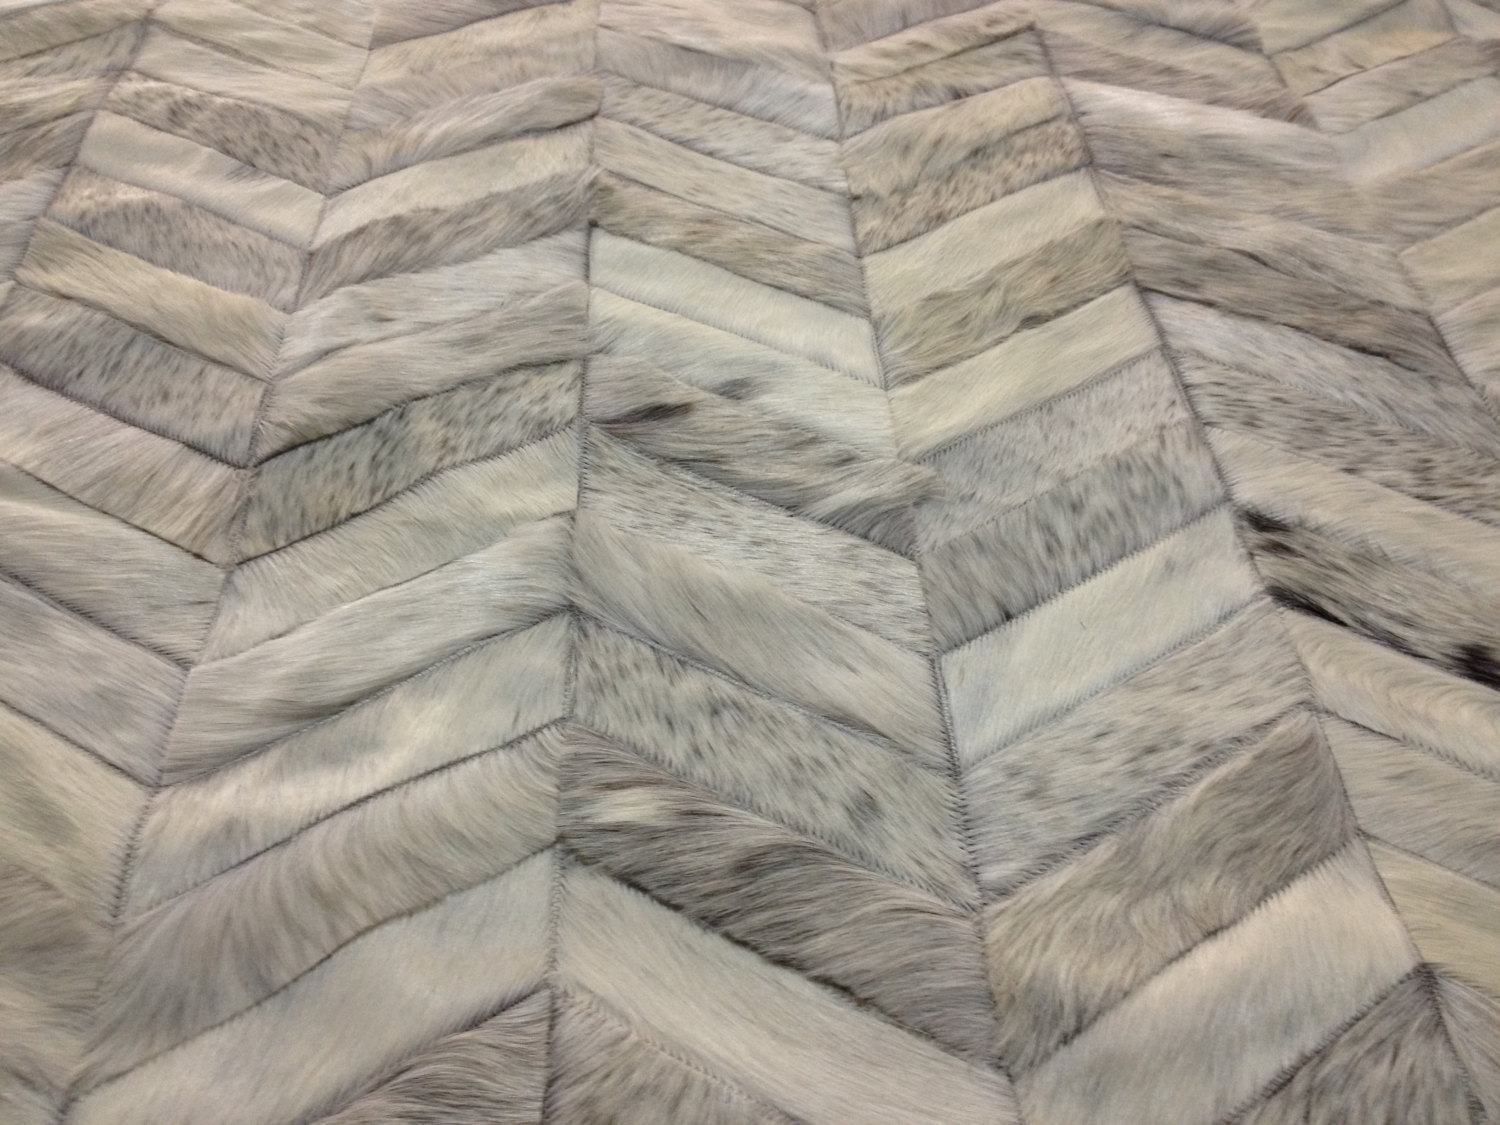 chic cowhide patchwork rug in grey with zigzag motif for floor decor ideas